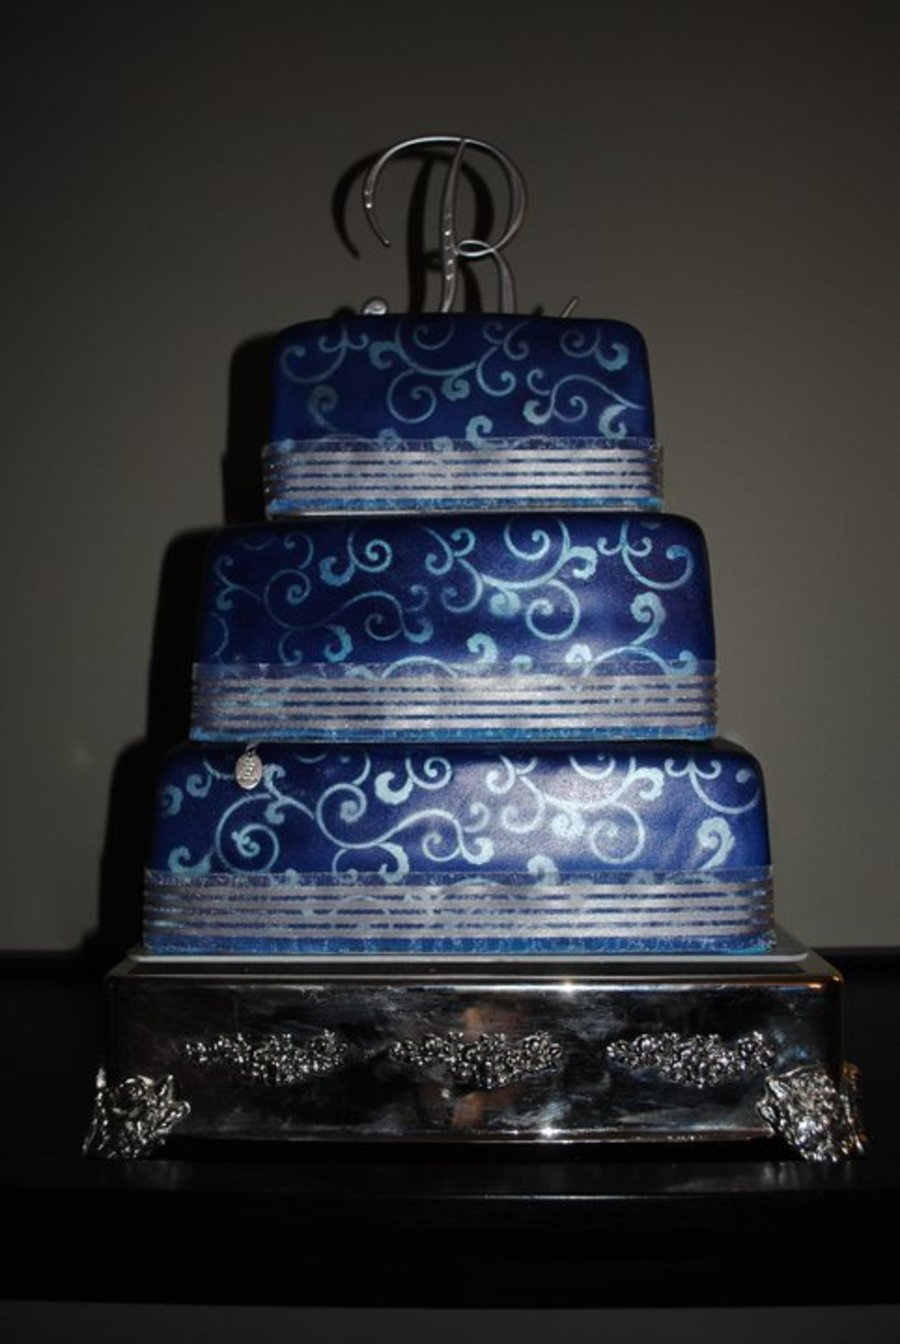 Royal Blue Fondant Cake With Silver Swirls CakeCentralcom